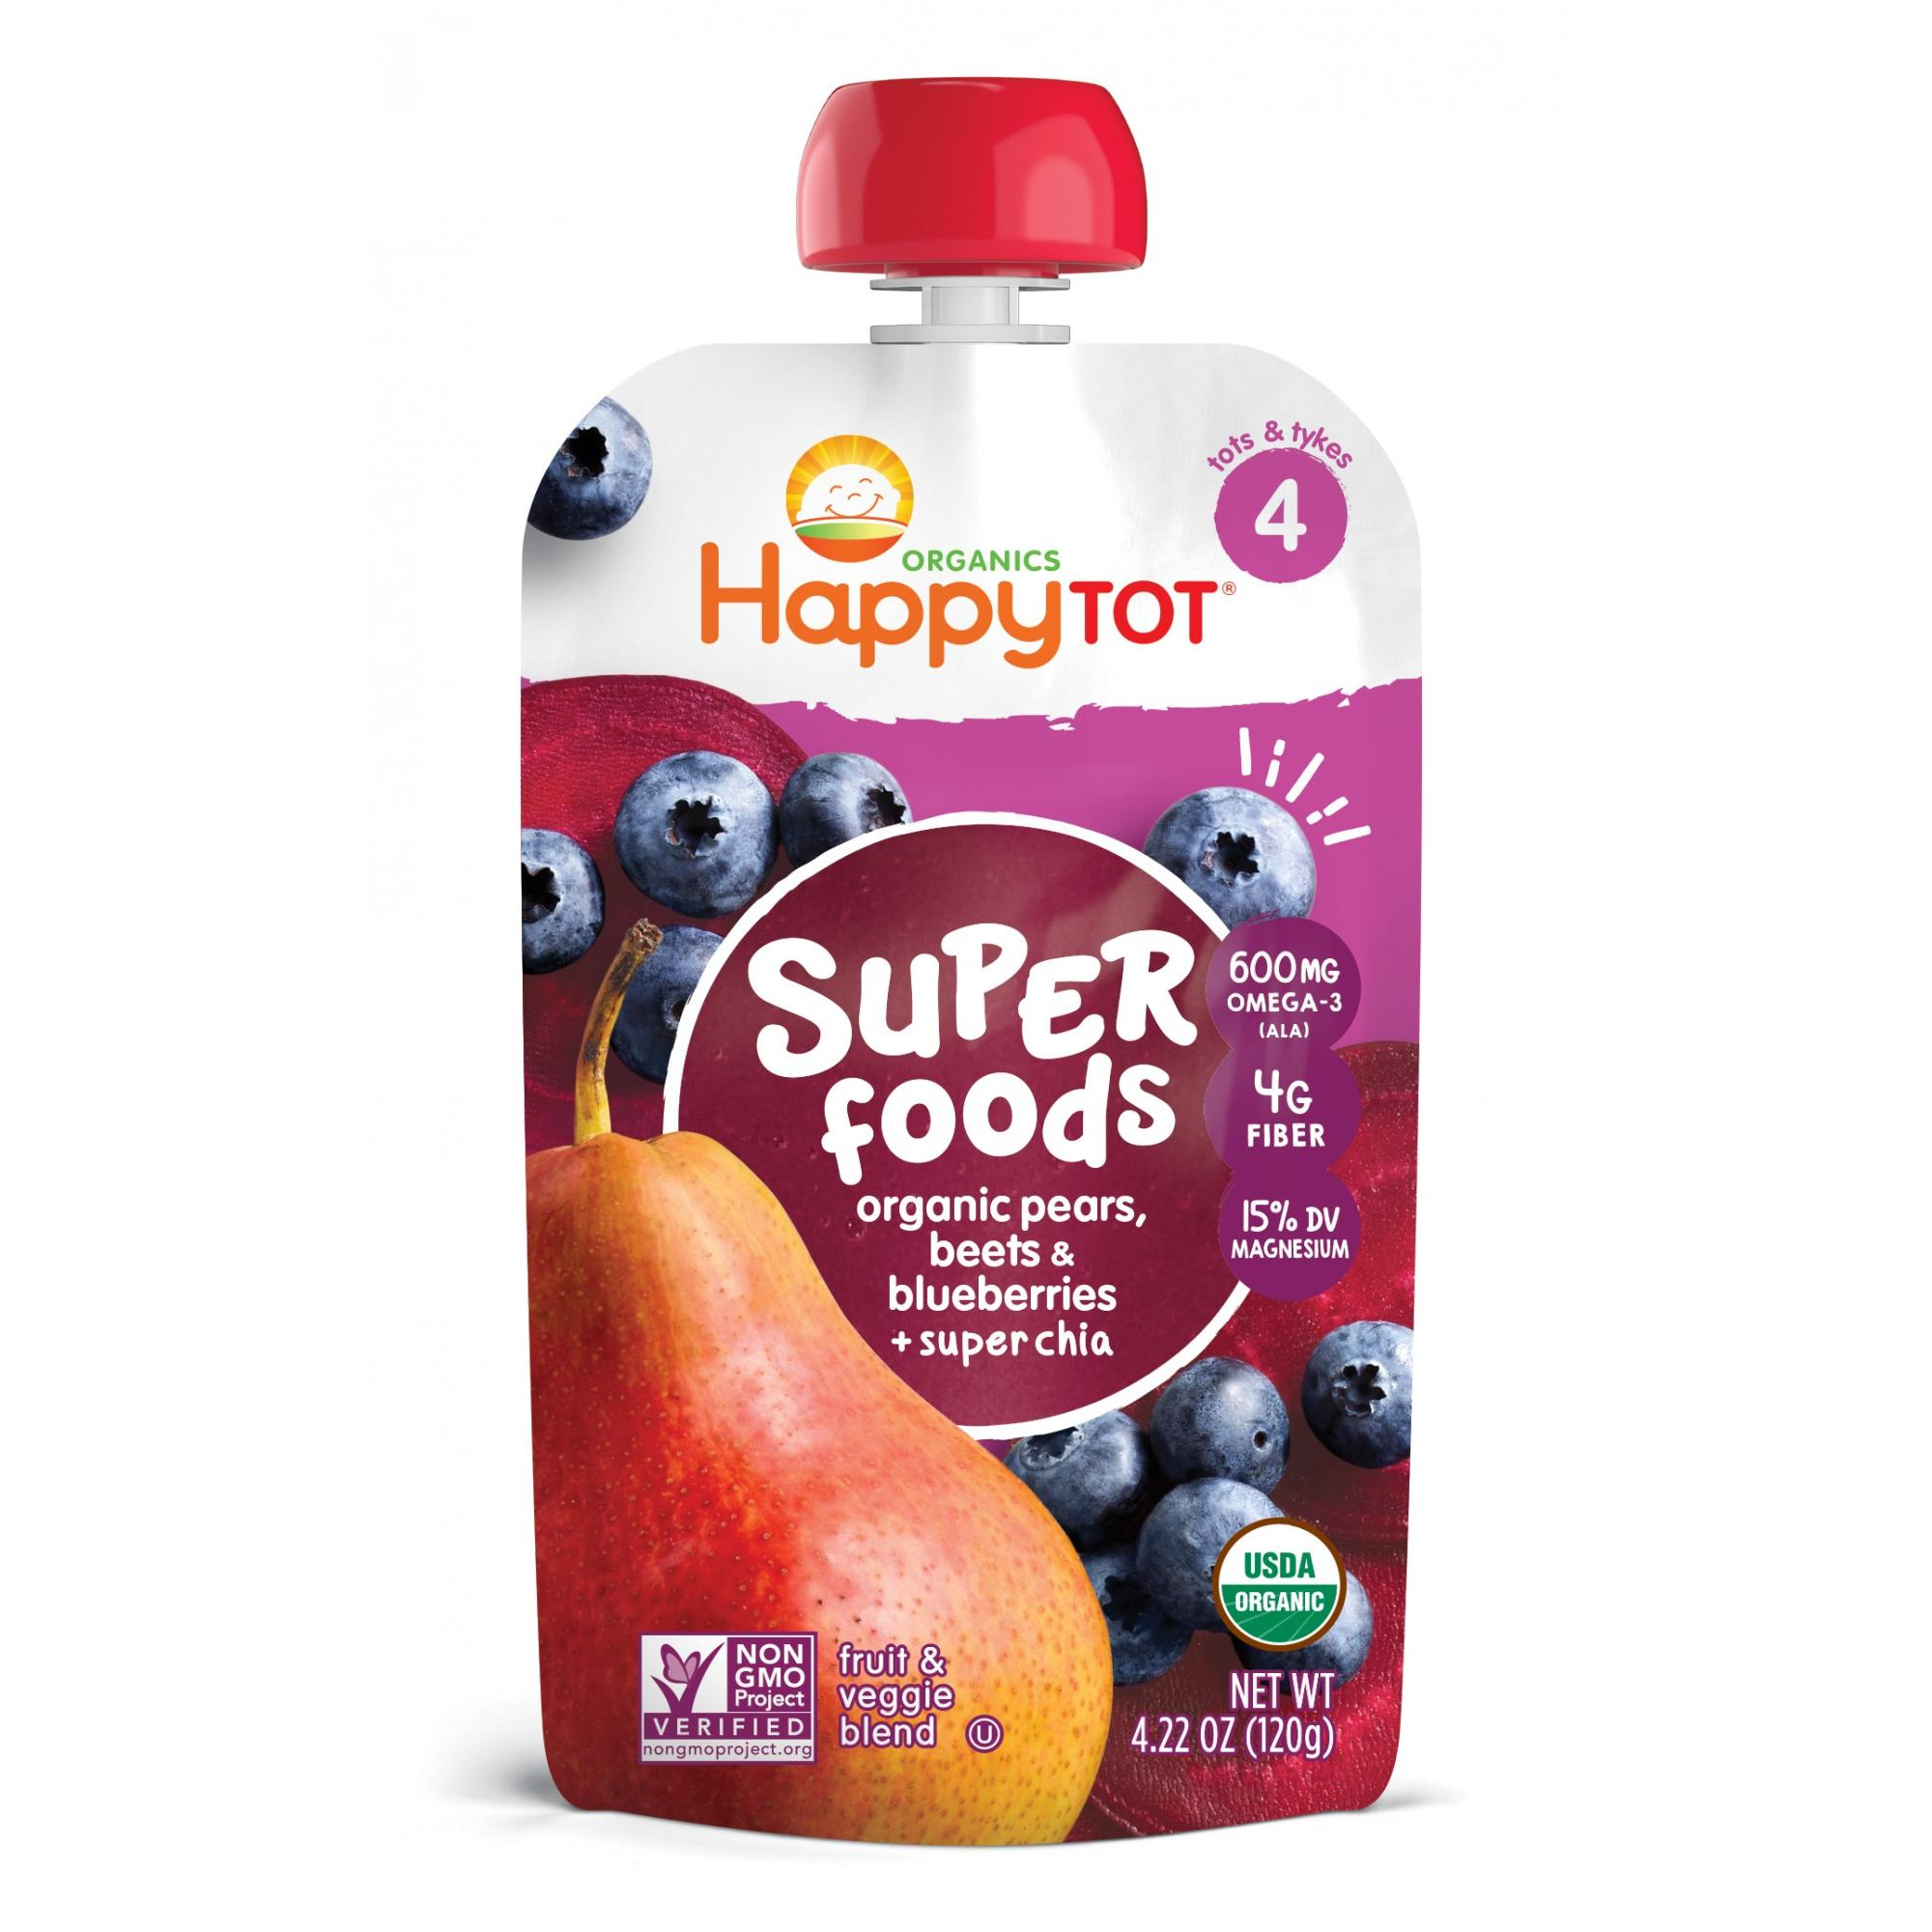 Happy Tot® Superfoods Organic Pears, Blueberries & Beets + Super Chia Fruit & Veggie Blend 4.22 oz. Pouch